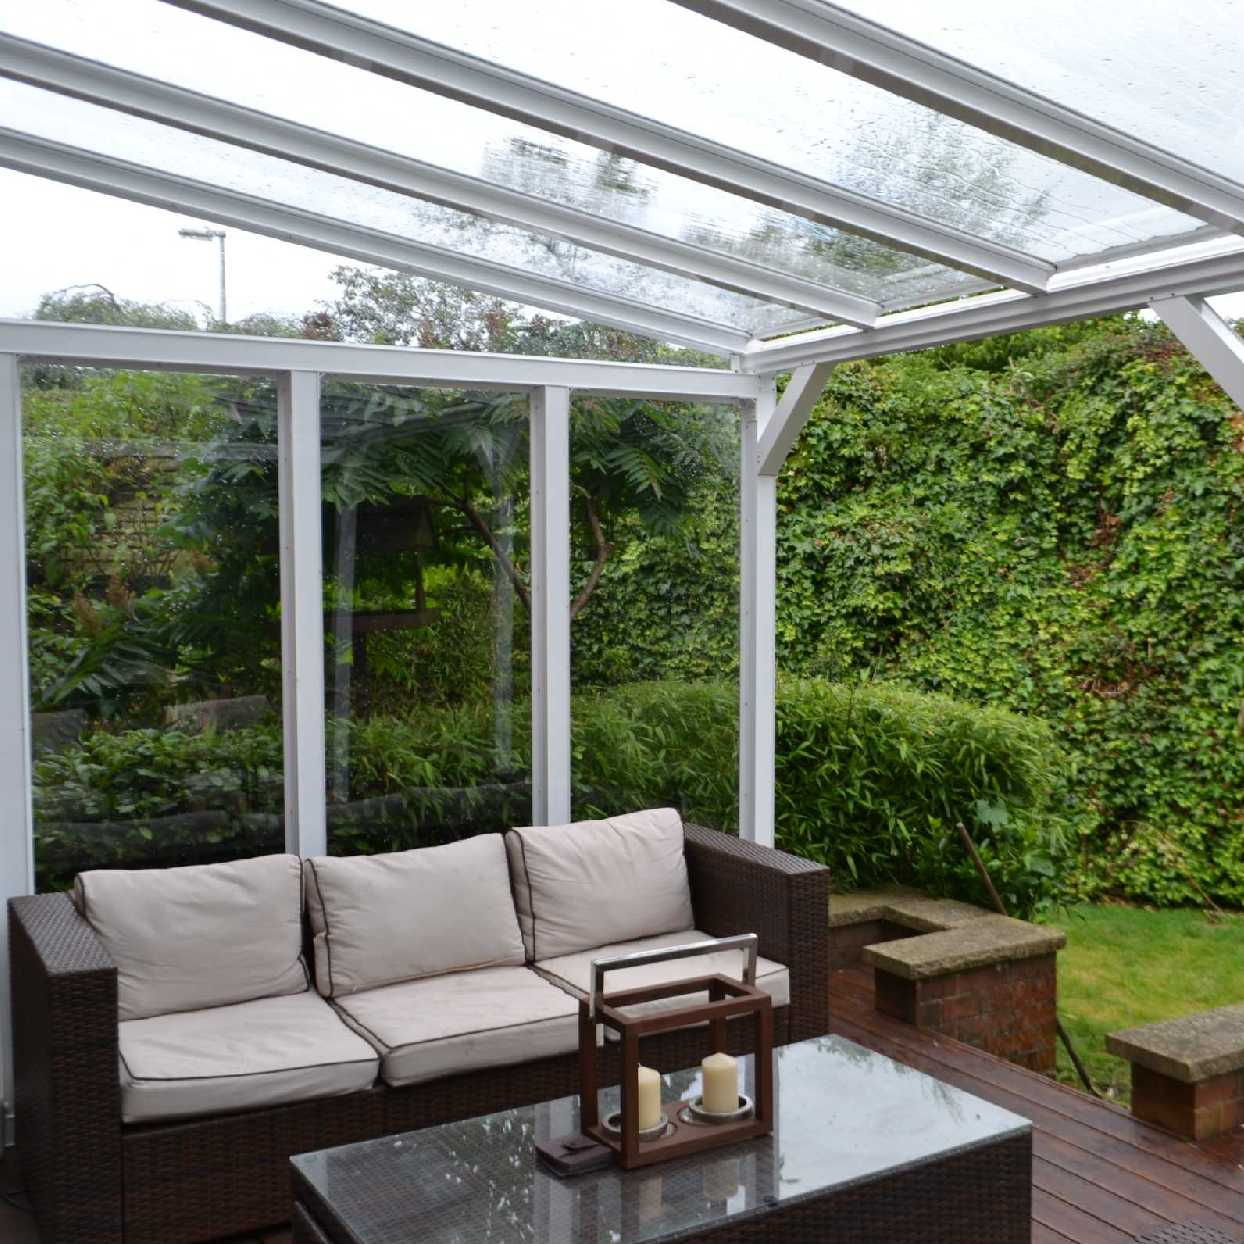 Great selection of Omega Smart White Lean-To Canopy with 16mm Polycarbonate Glazing - 10.6m (W) x 1.5m (P), (5) Supporting Posts